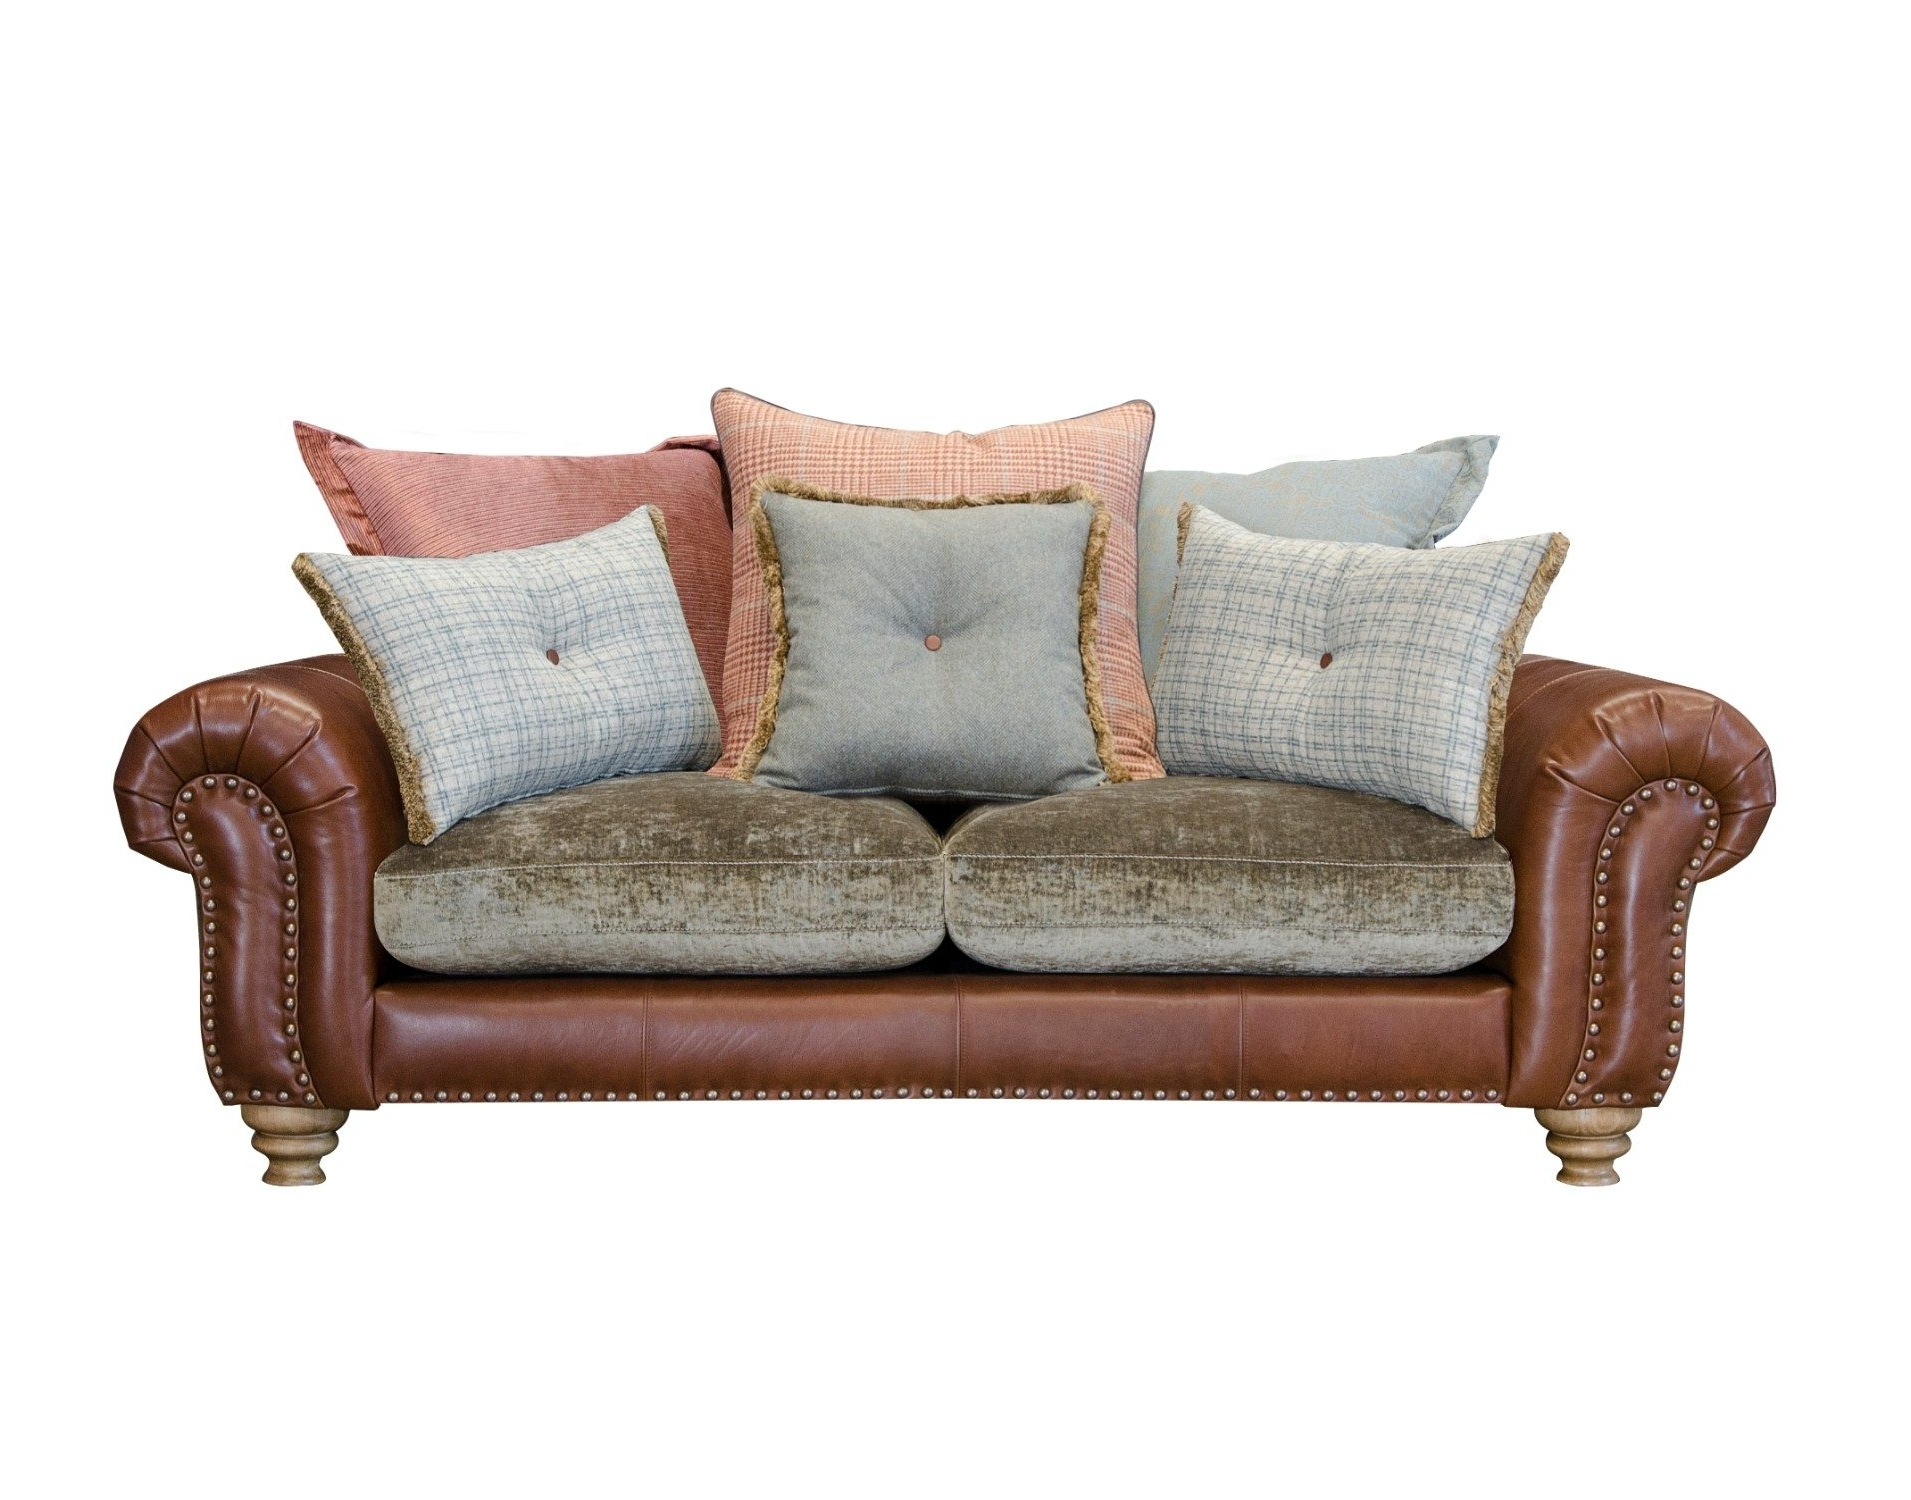 2 Seater Sofas In Cornwall & Devon At Furniture World – Furniture Within Most Popular Single Seat Sofa Chairs (View 1 of 20)